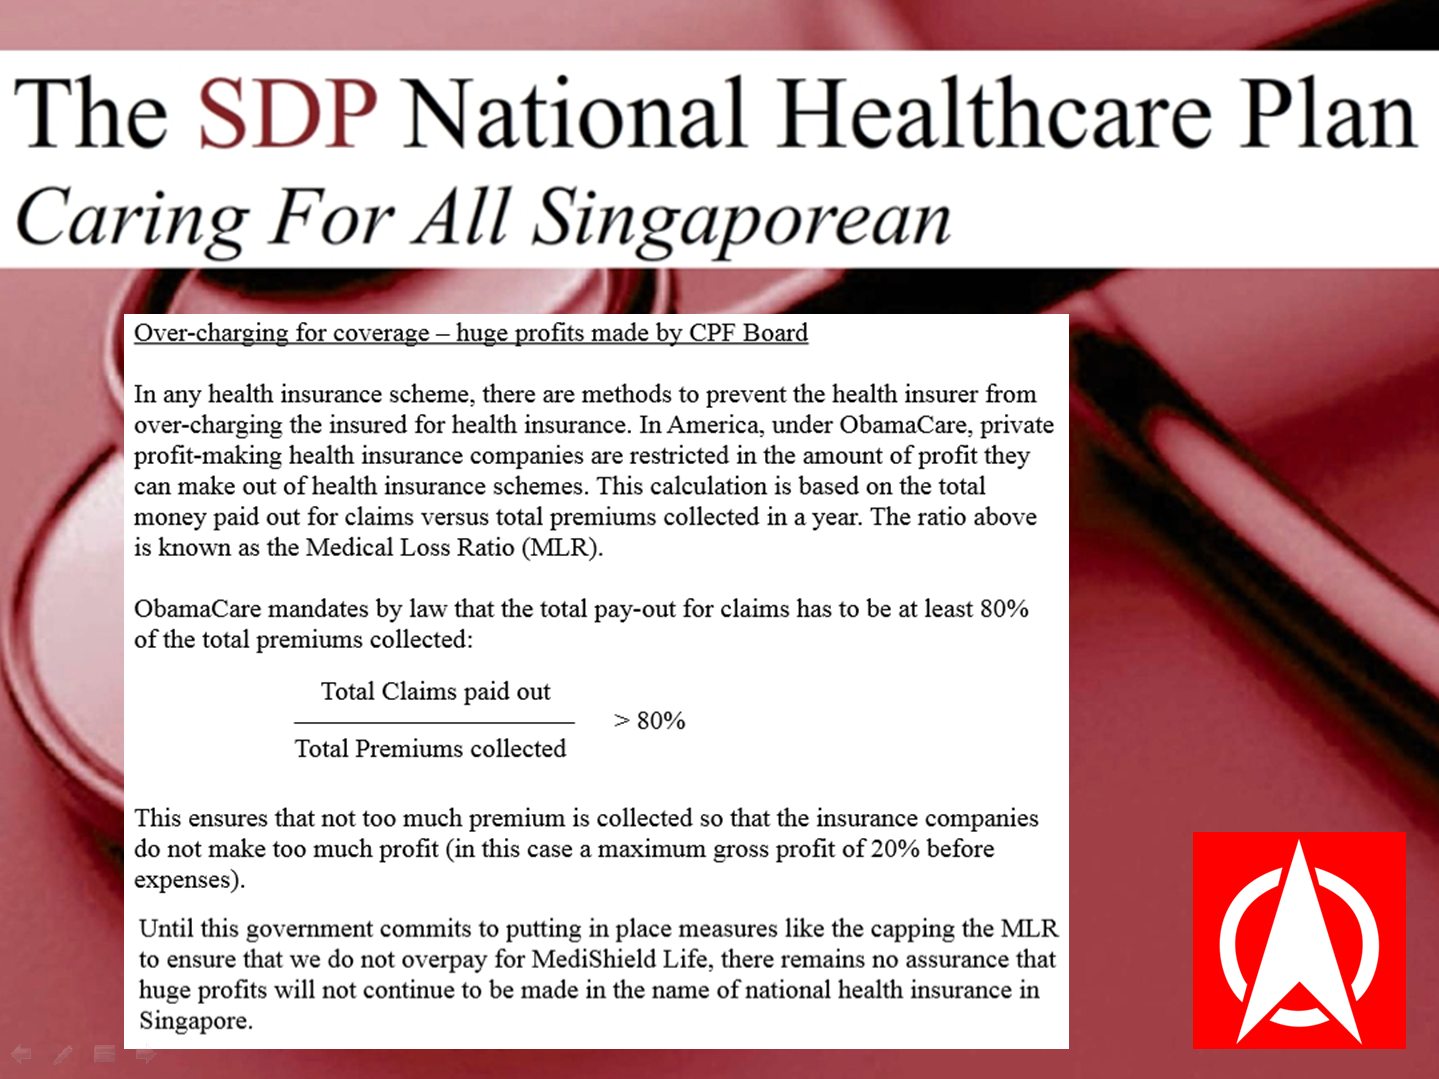 18 SDP National Healthcare Plan.png